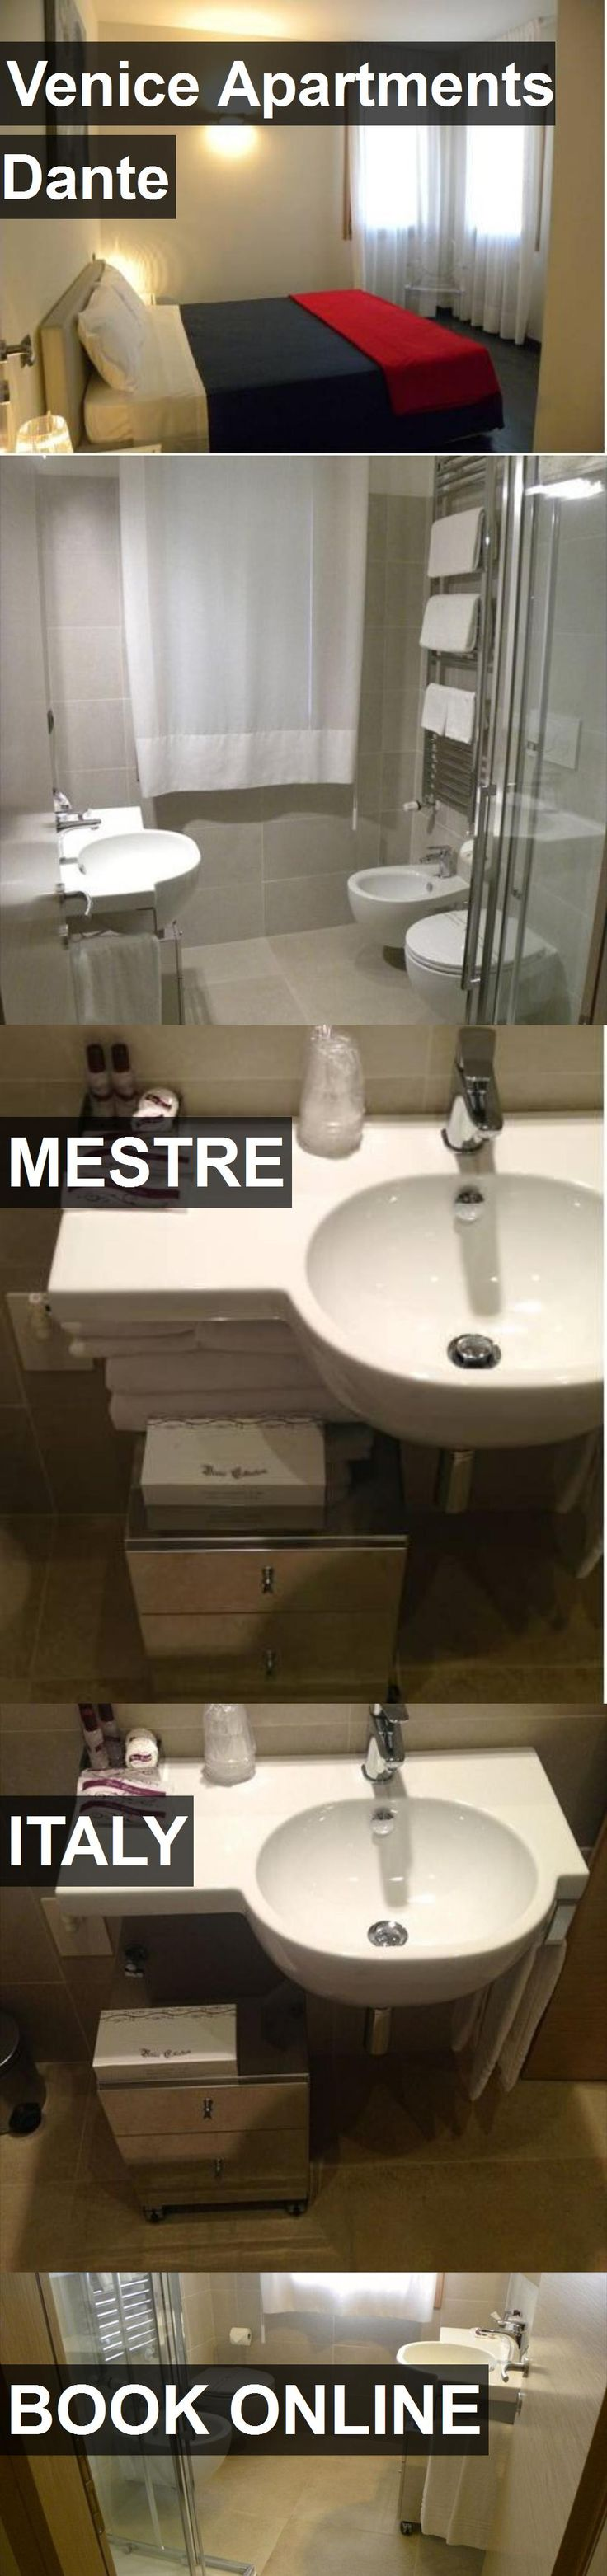 Hotel Venice Apartments Dante in Mestre, Italy. For more information, photos, reviews and best prices please follow the link. #Italy #Mestre #VeniceApartmentsDante #hotel #travel #vacation